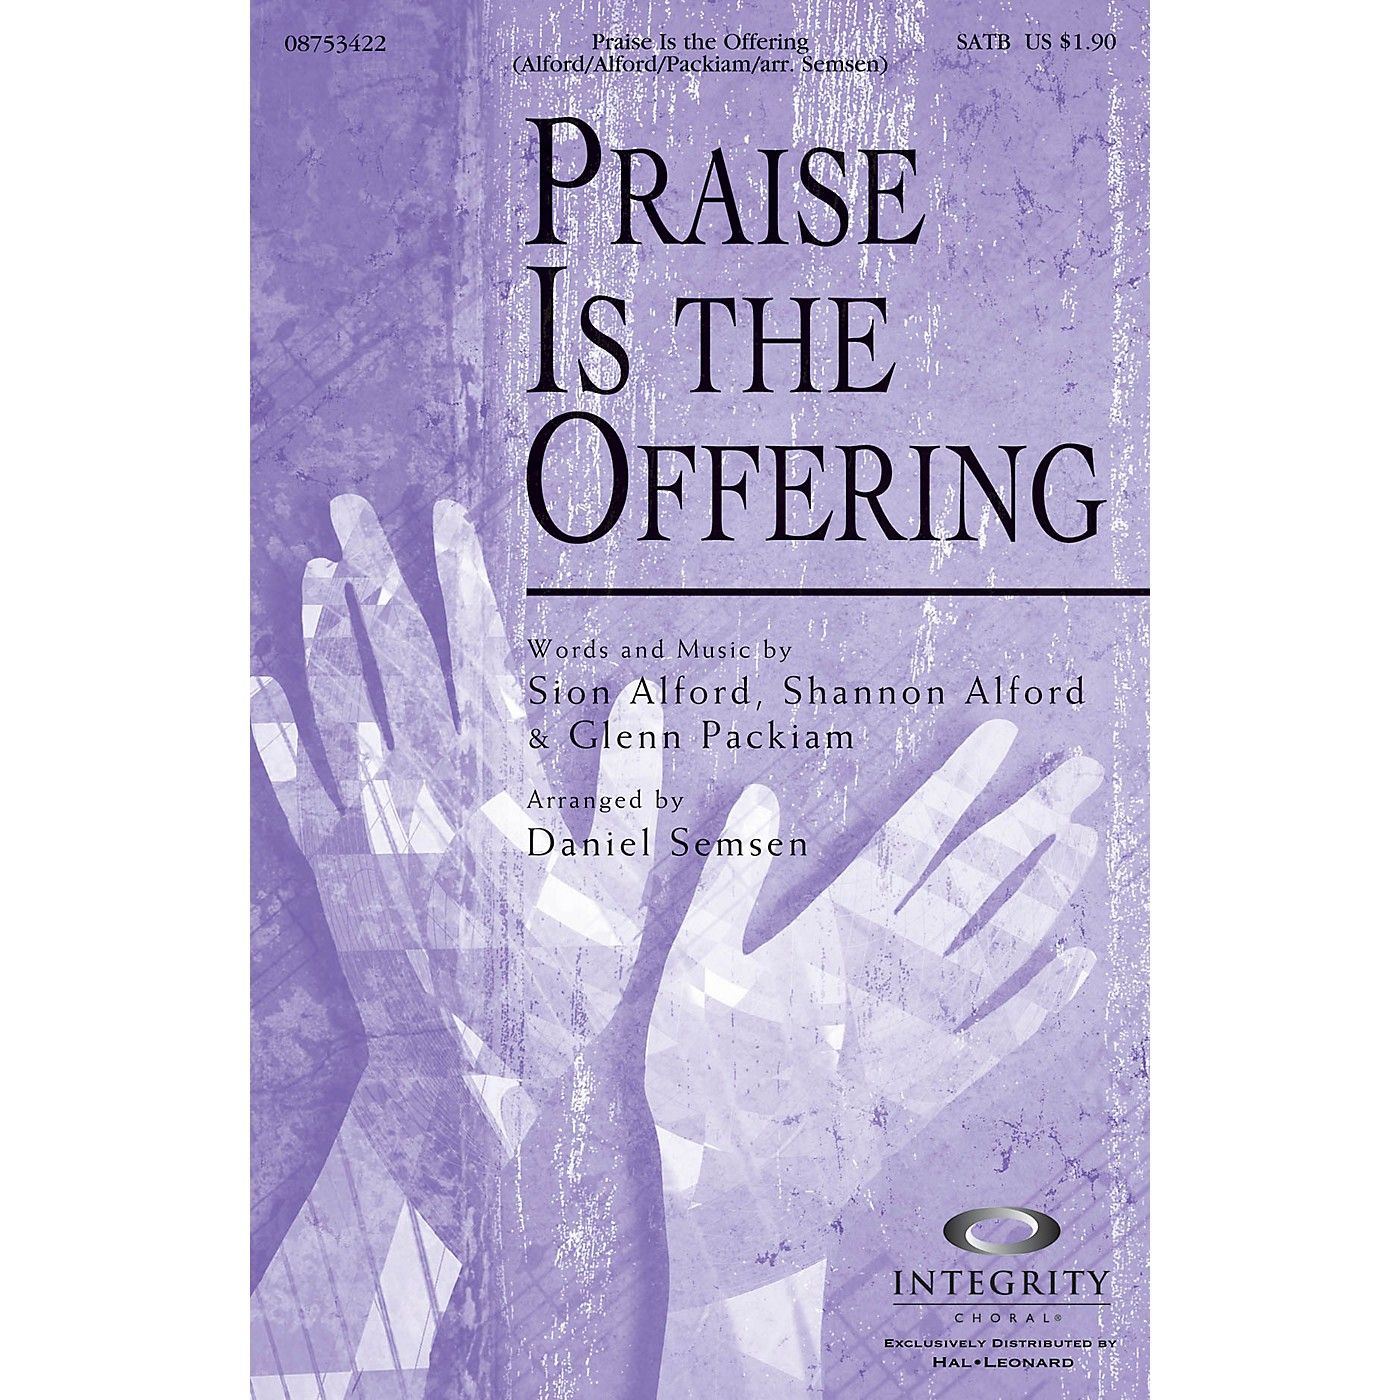 Integrity Choral Praise Is the Offering SATB Arranged by Daniel Semsen thumbnail